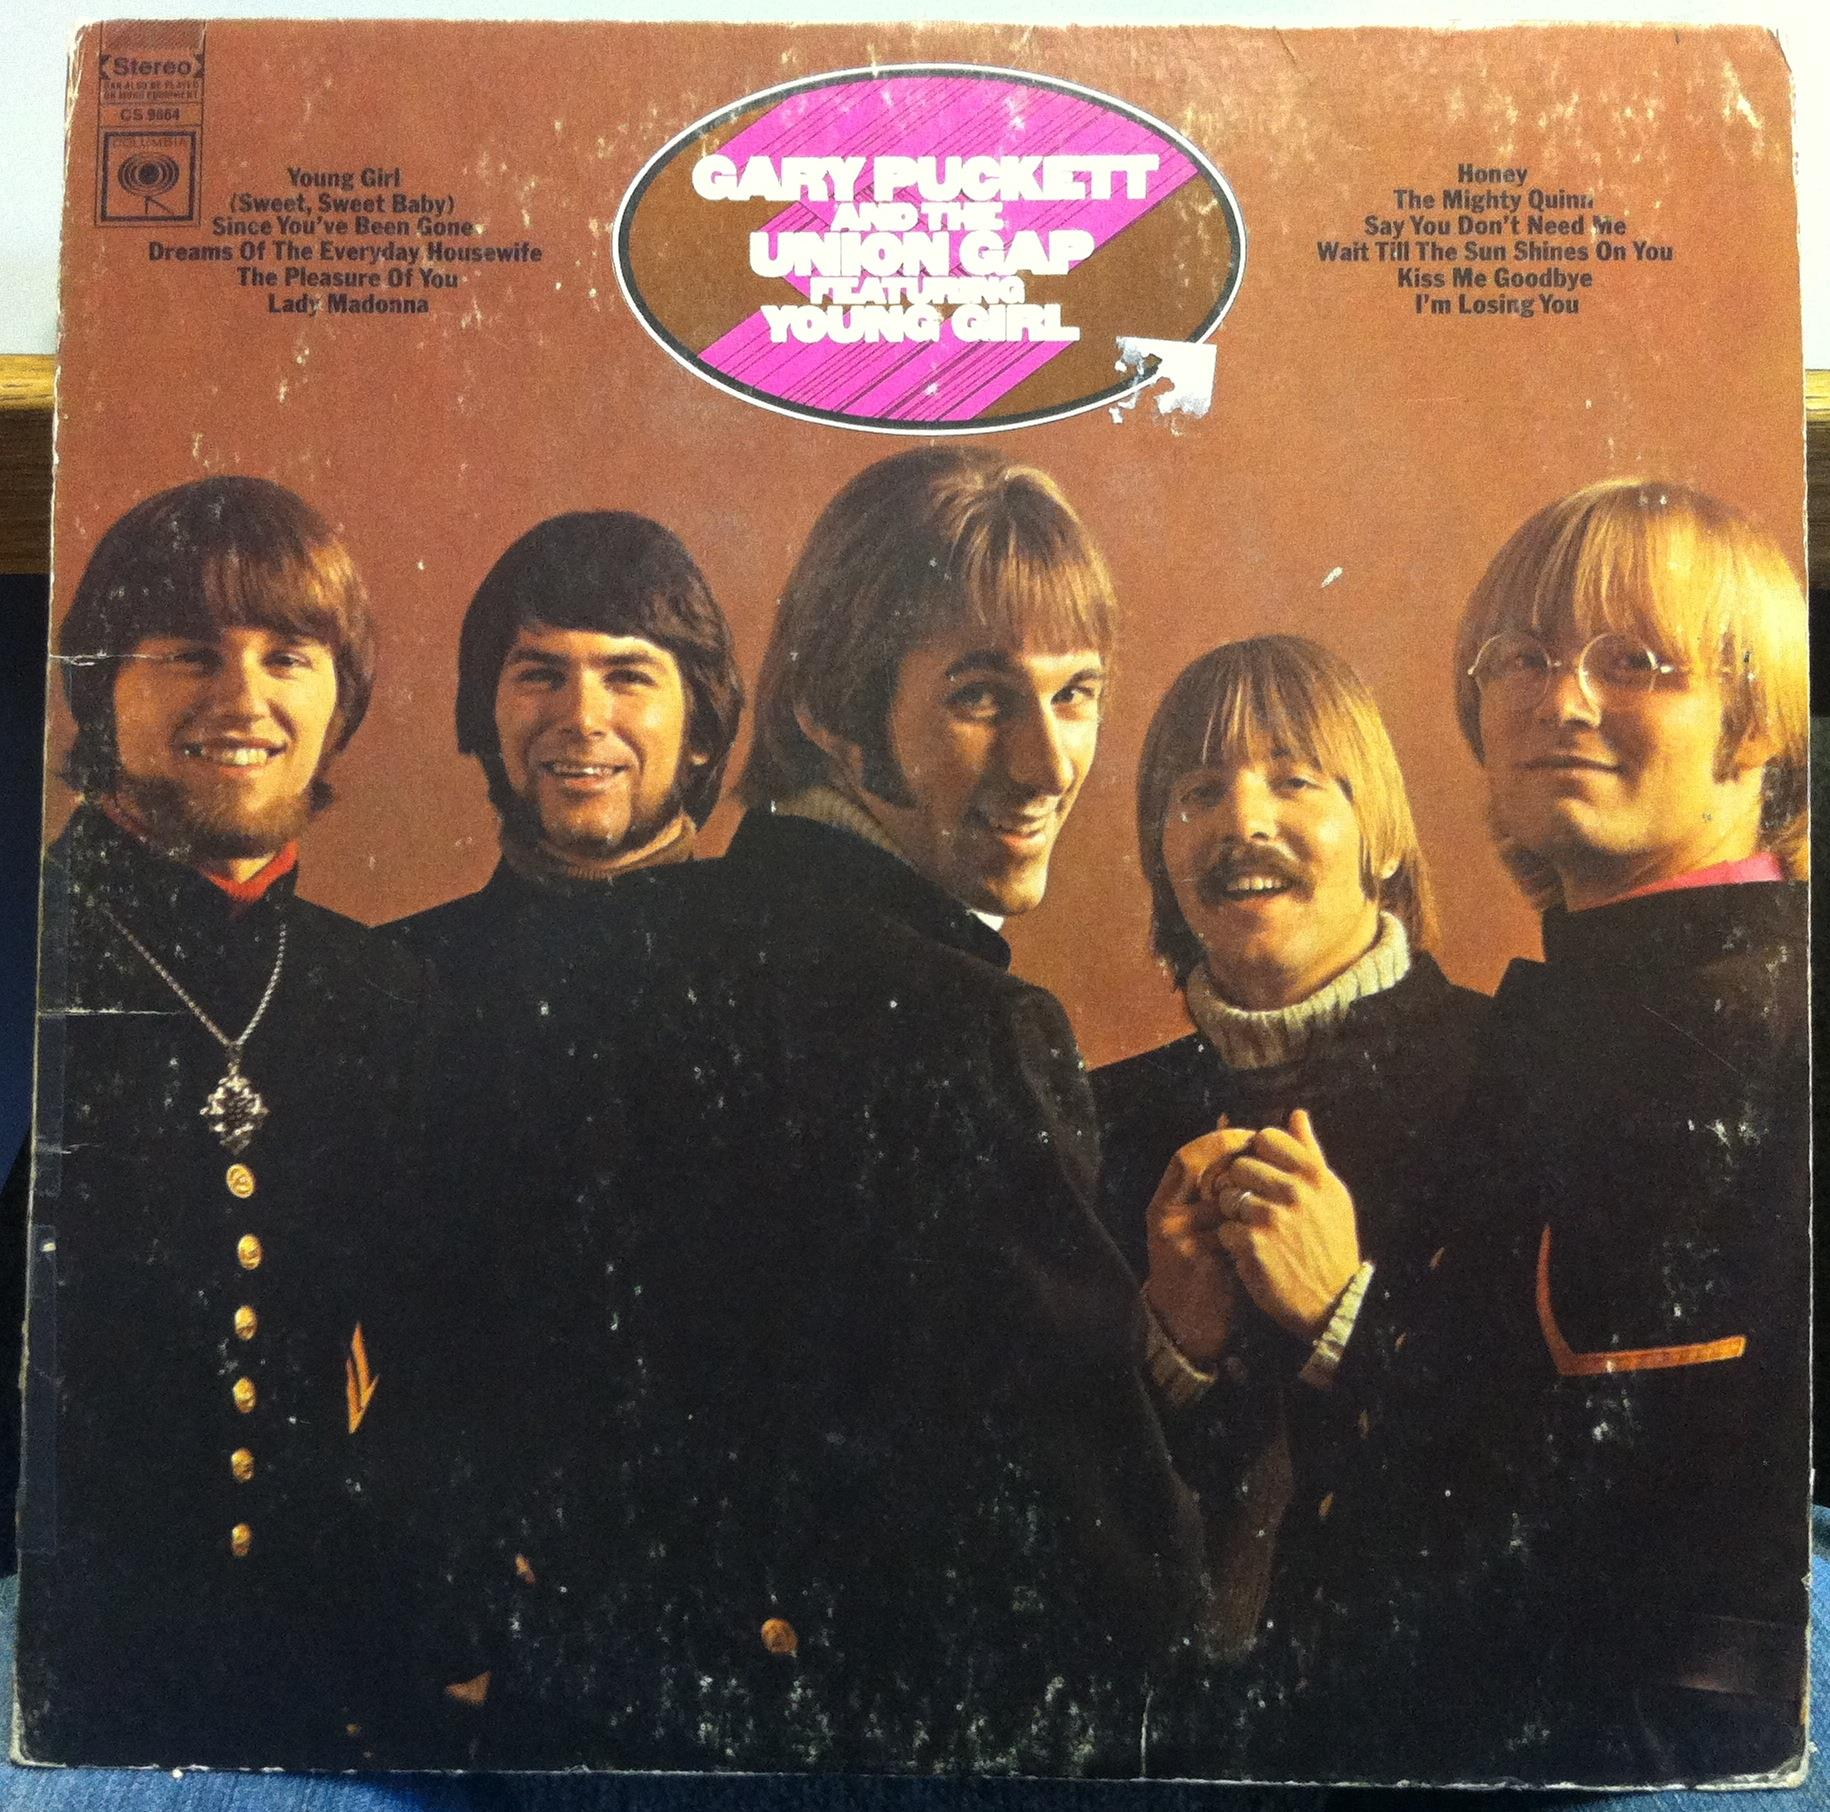 christian singles in puckett The unforgettables: the best of 1968 peak at: #2 (2 weeks) lady willpower (fuller) by gary puckett and the union gap, arranged by al capps, produced by jerr.